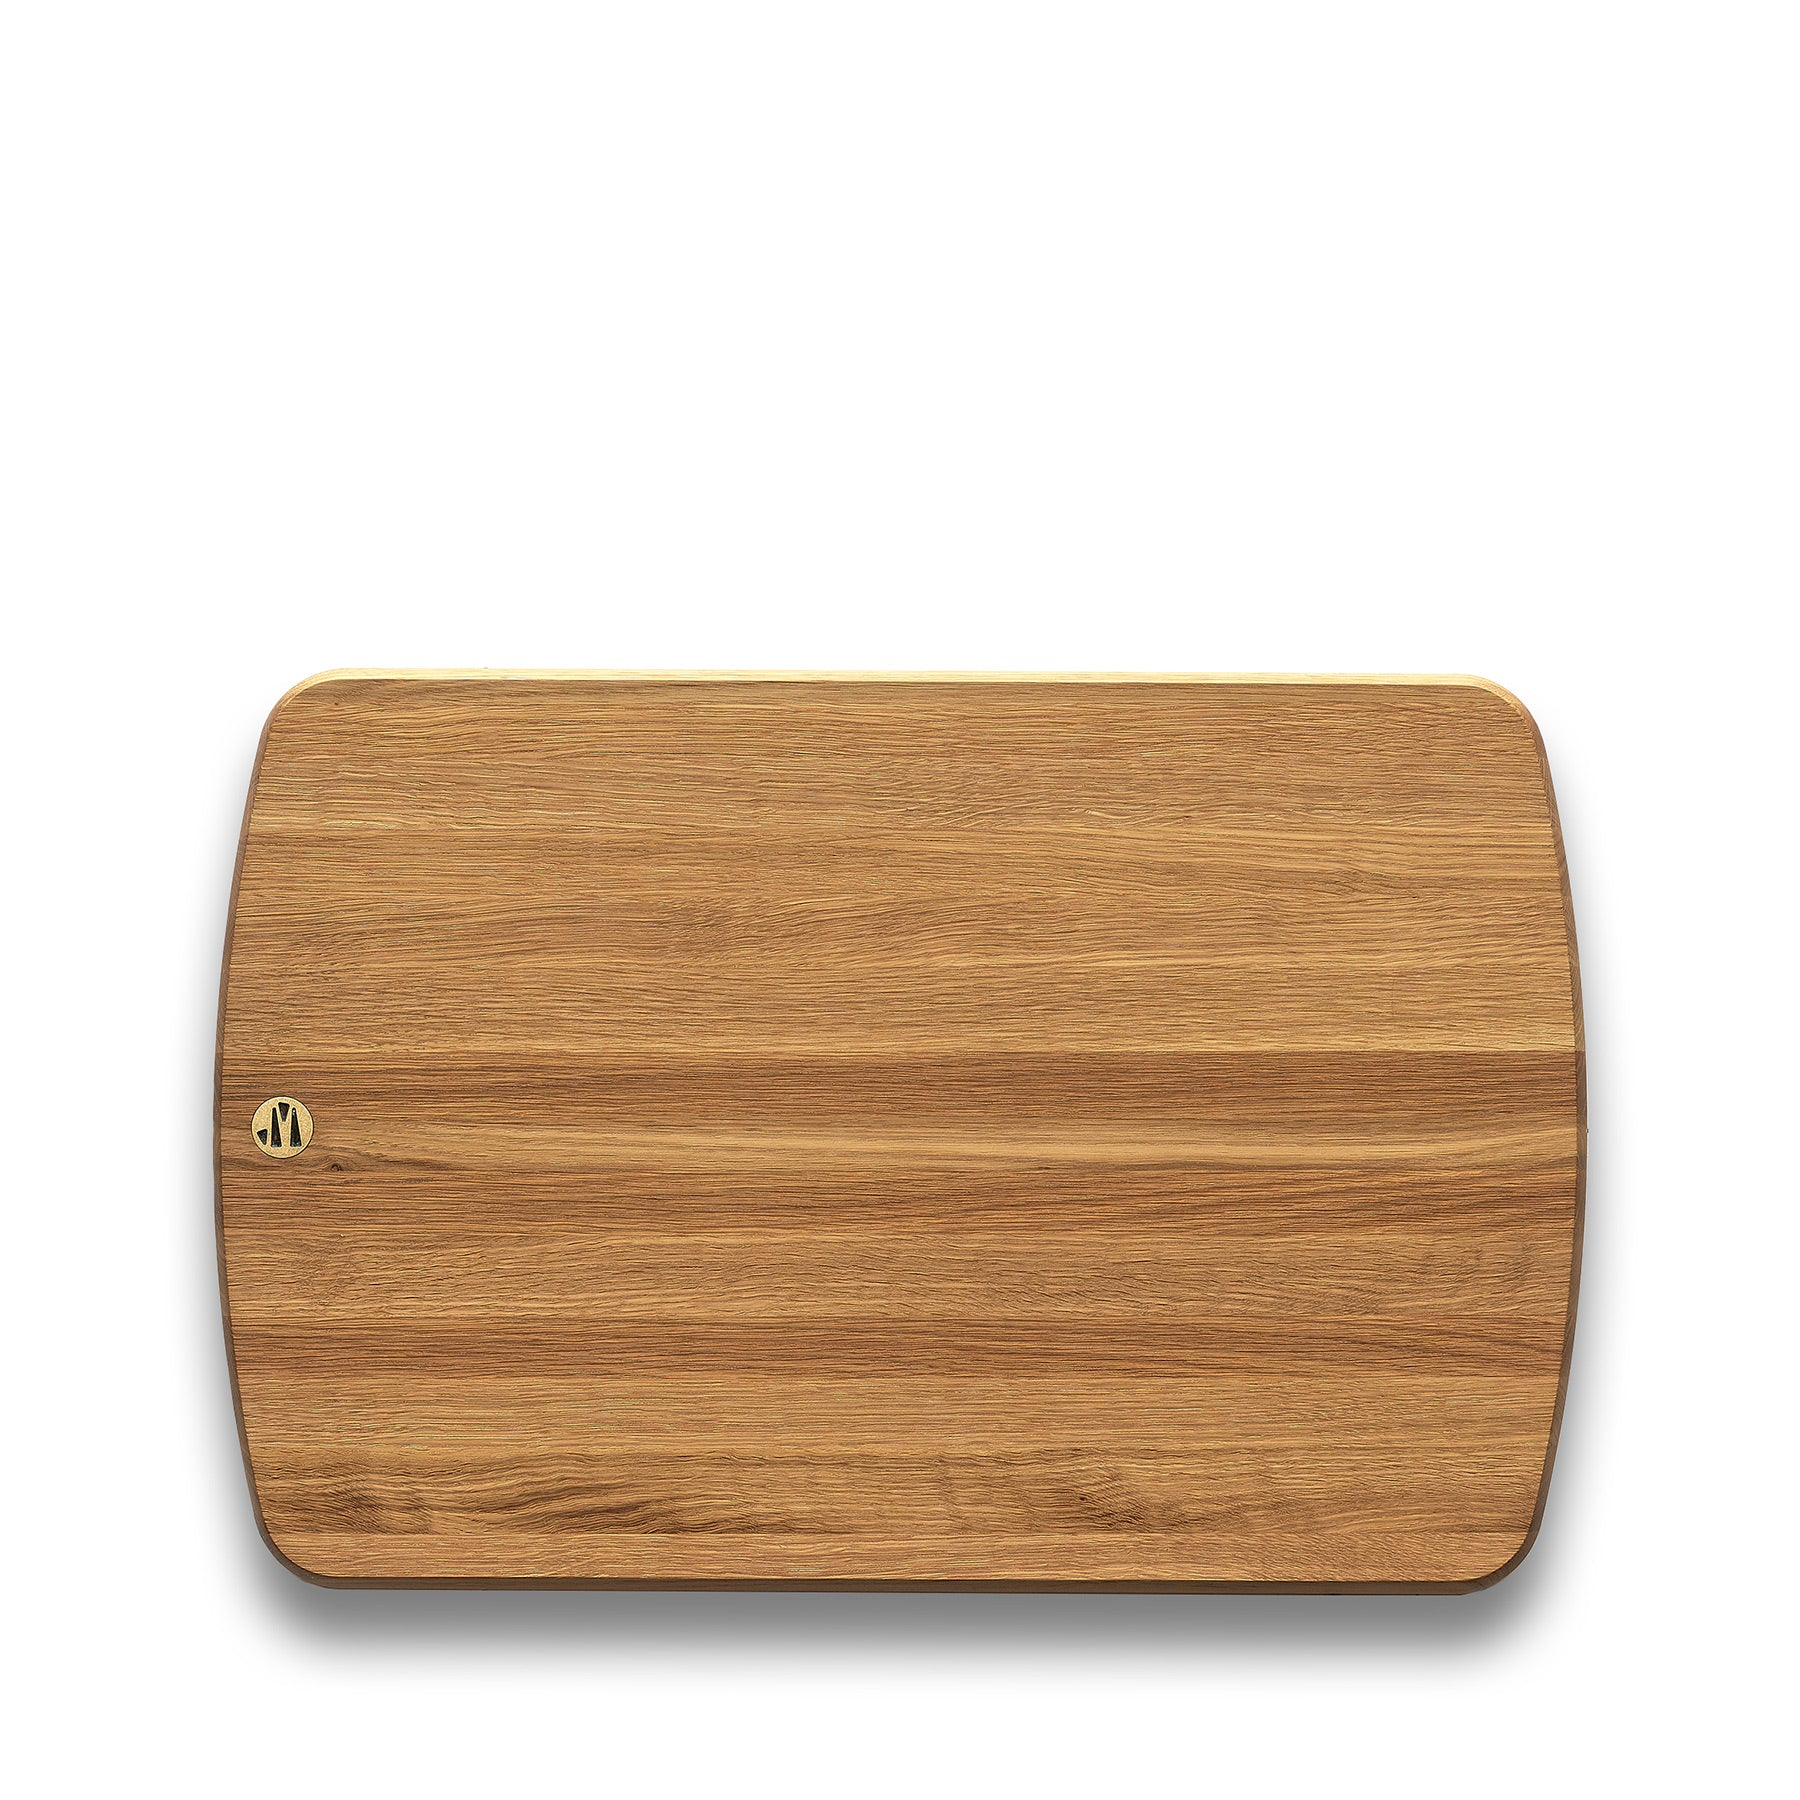 Large White Oak Cutting Board Zoom Image 1